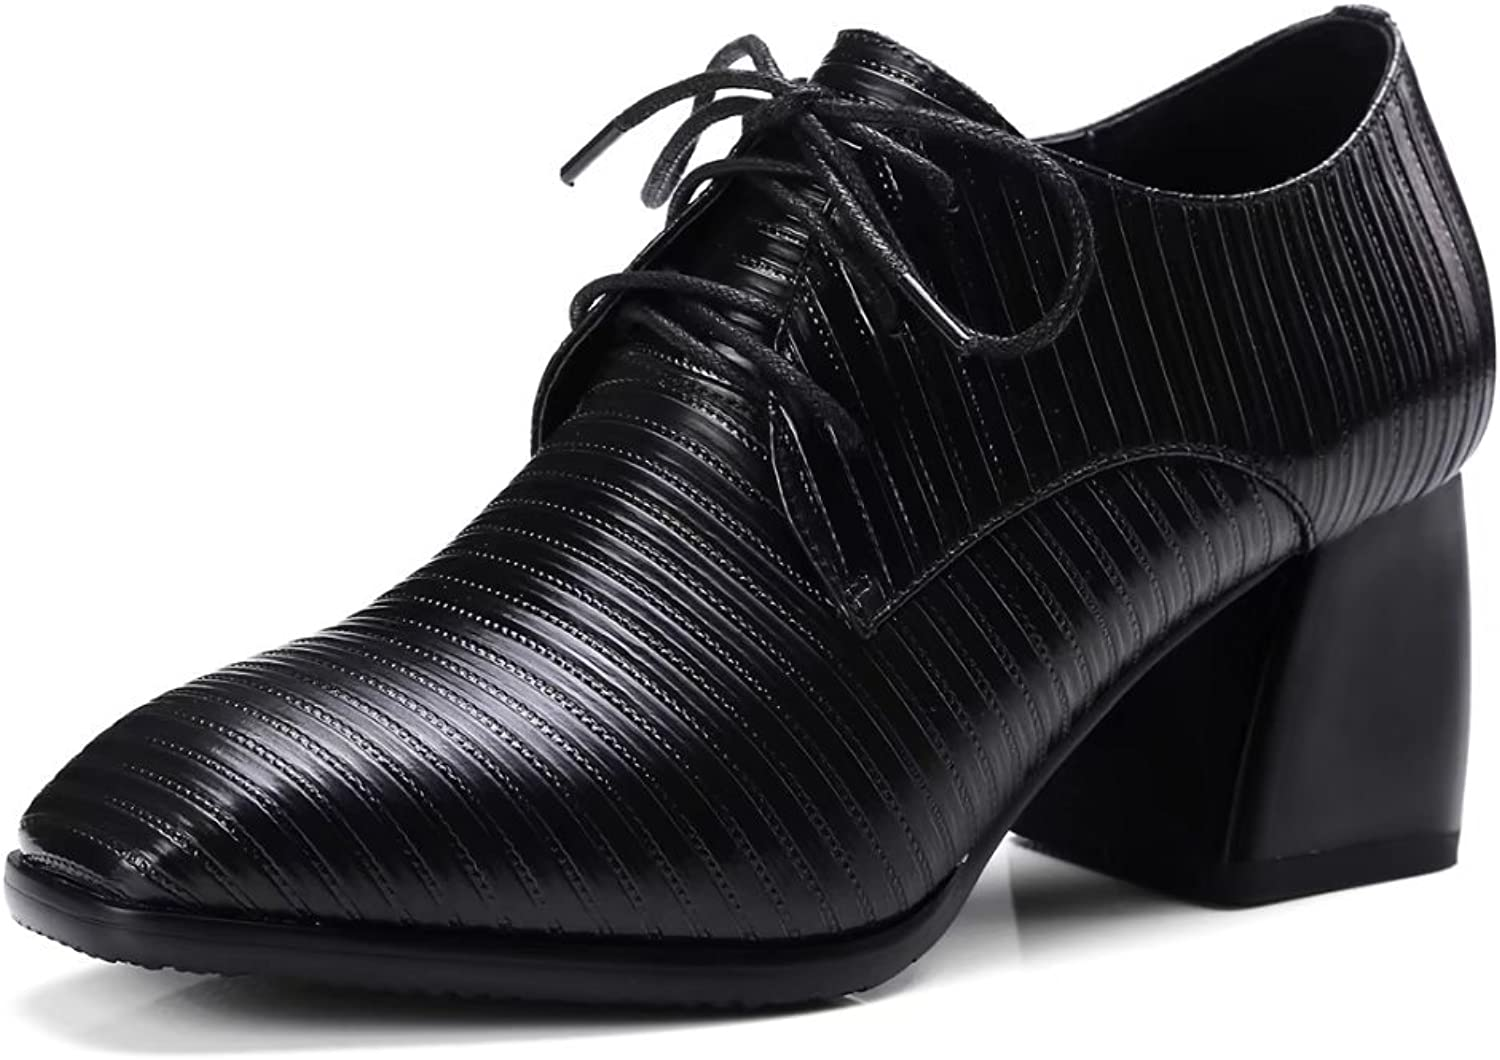 VIMISAOI Women's Lace Up Oxford shoes Nappa-Leather Black Chunky Heel Ankle Booties